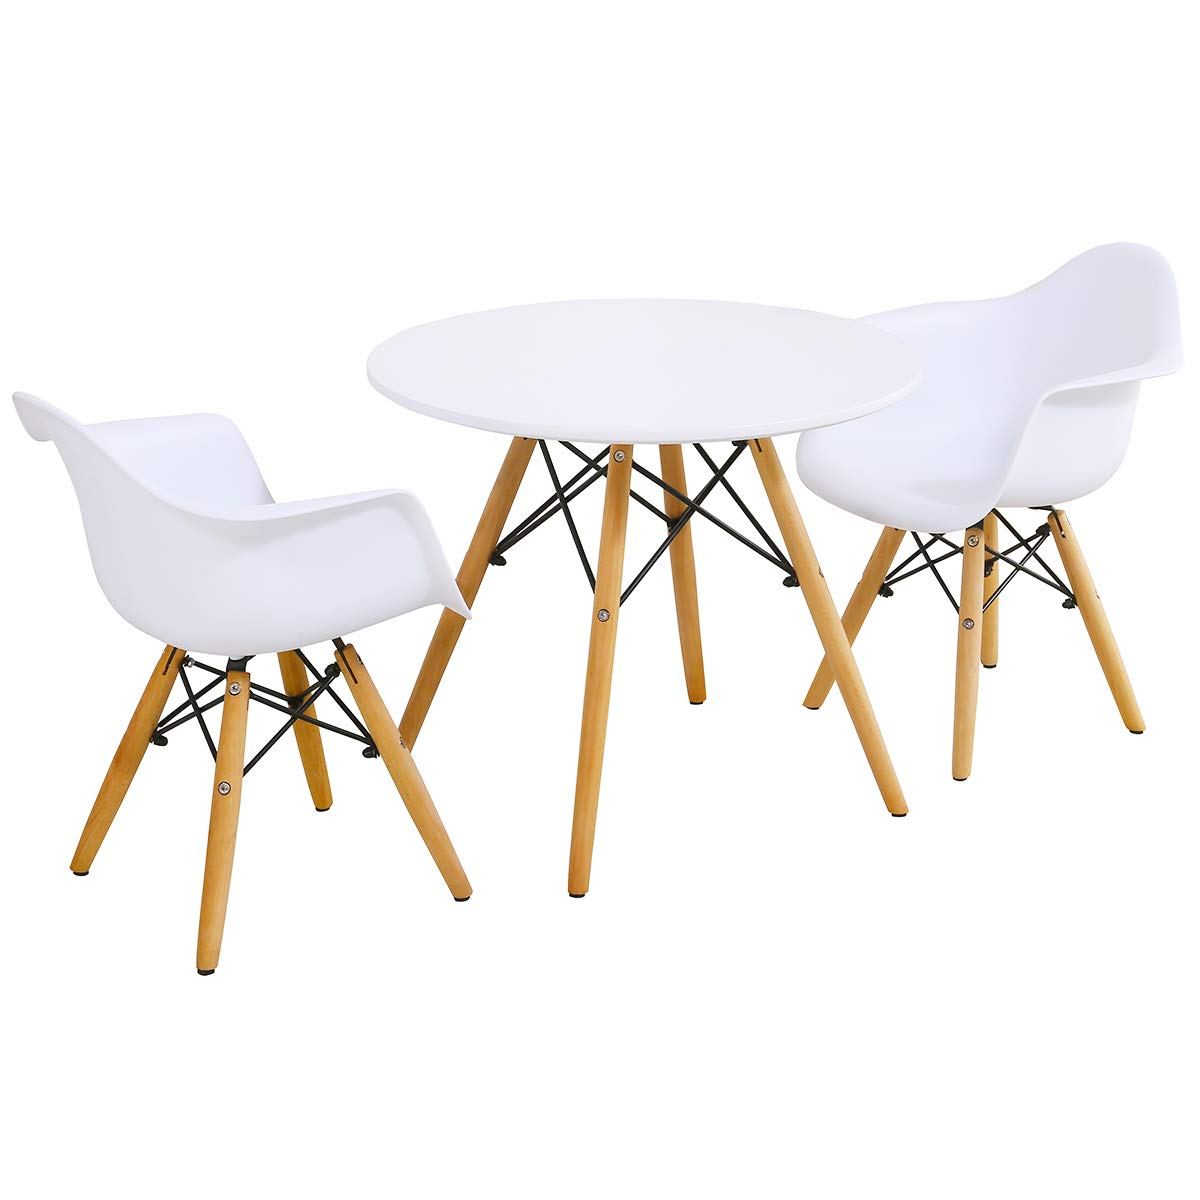 Costzon Kids Mid-Century Modern Style Table Set, Kids Table and 2 Chairs Set, Round Table with Armchairs for Toddler Children, Kids Dining Table and Chairs Set (White, Table & 2 Chairs) by Costzon (Image #1)